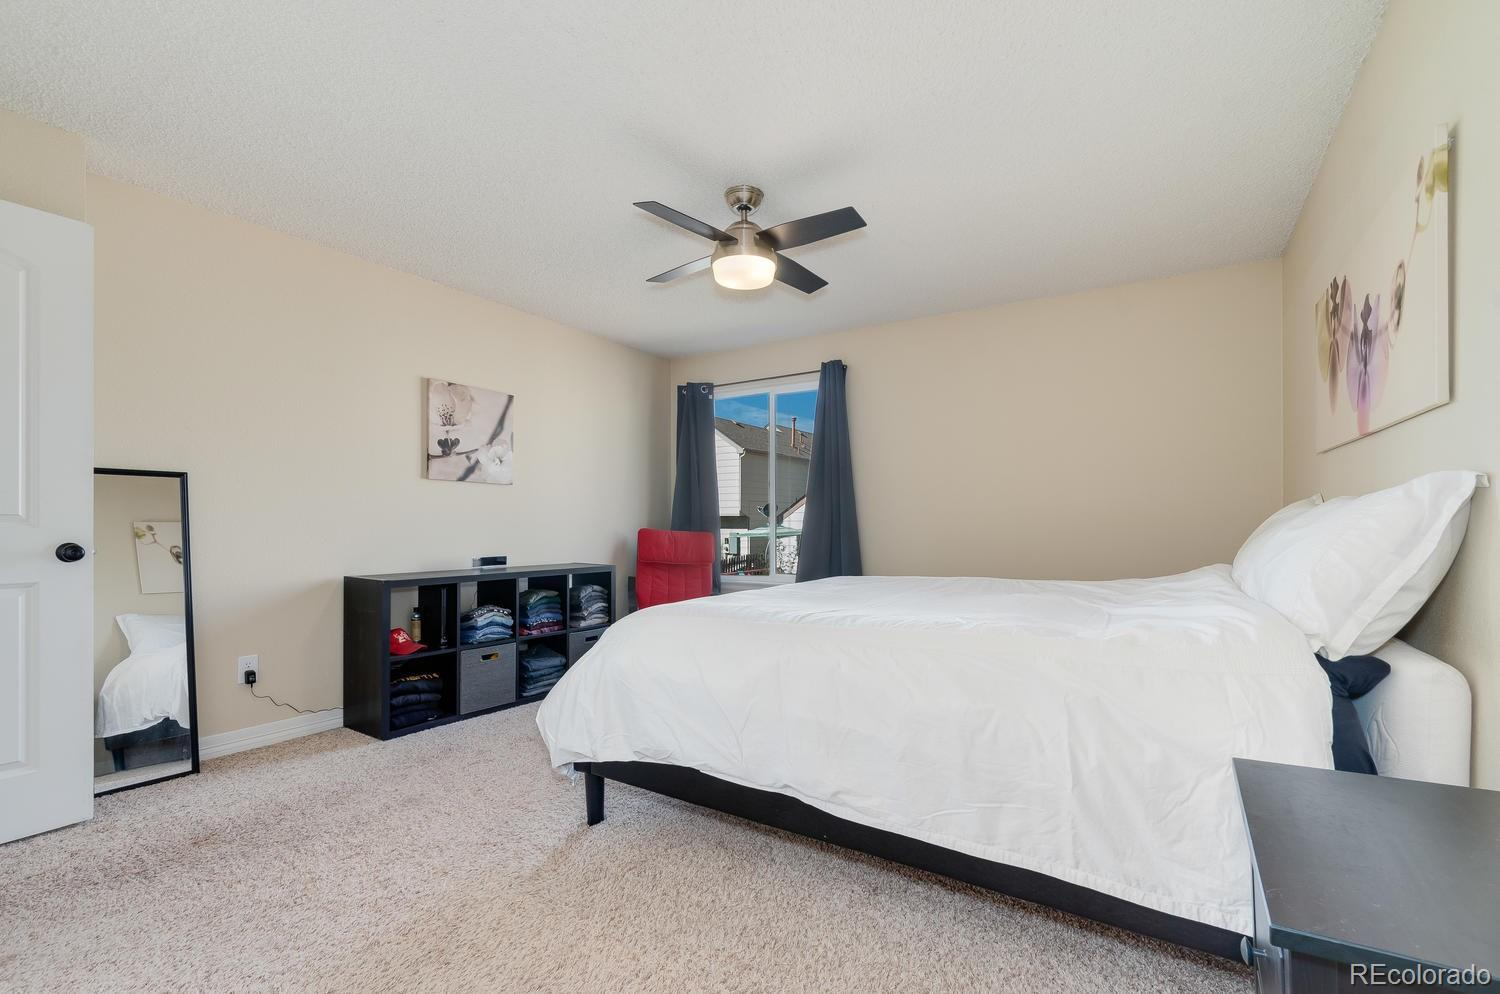 MLS# 2006537 - 20 - 5629 S Youngfield Way, Littleton, CO 80127